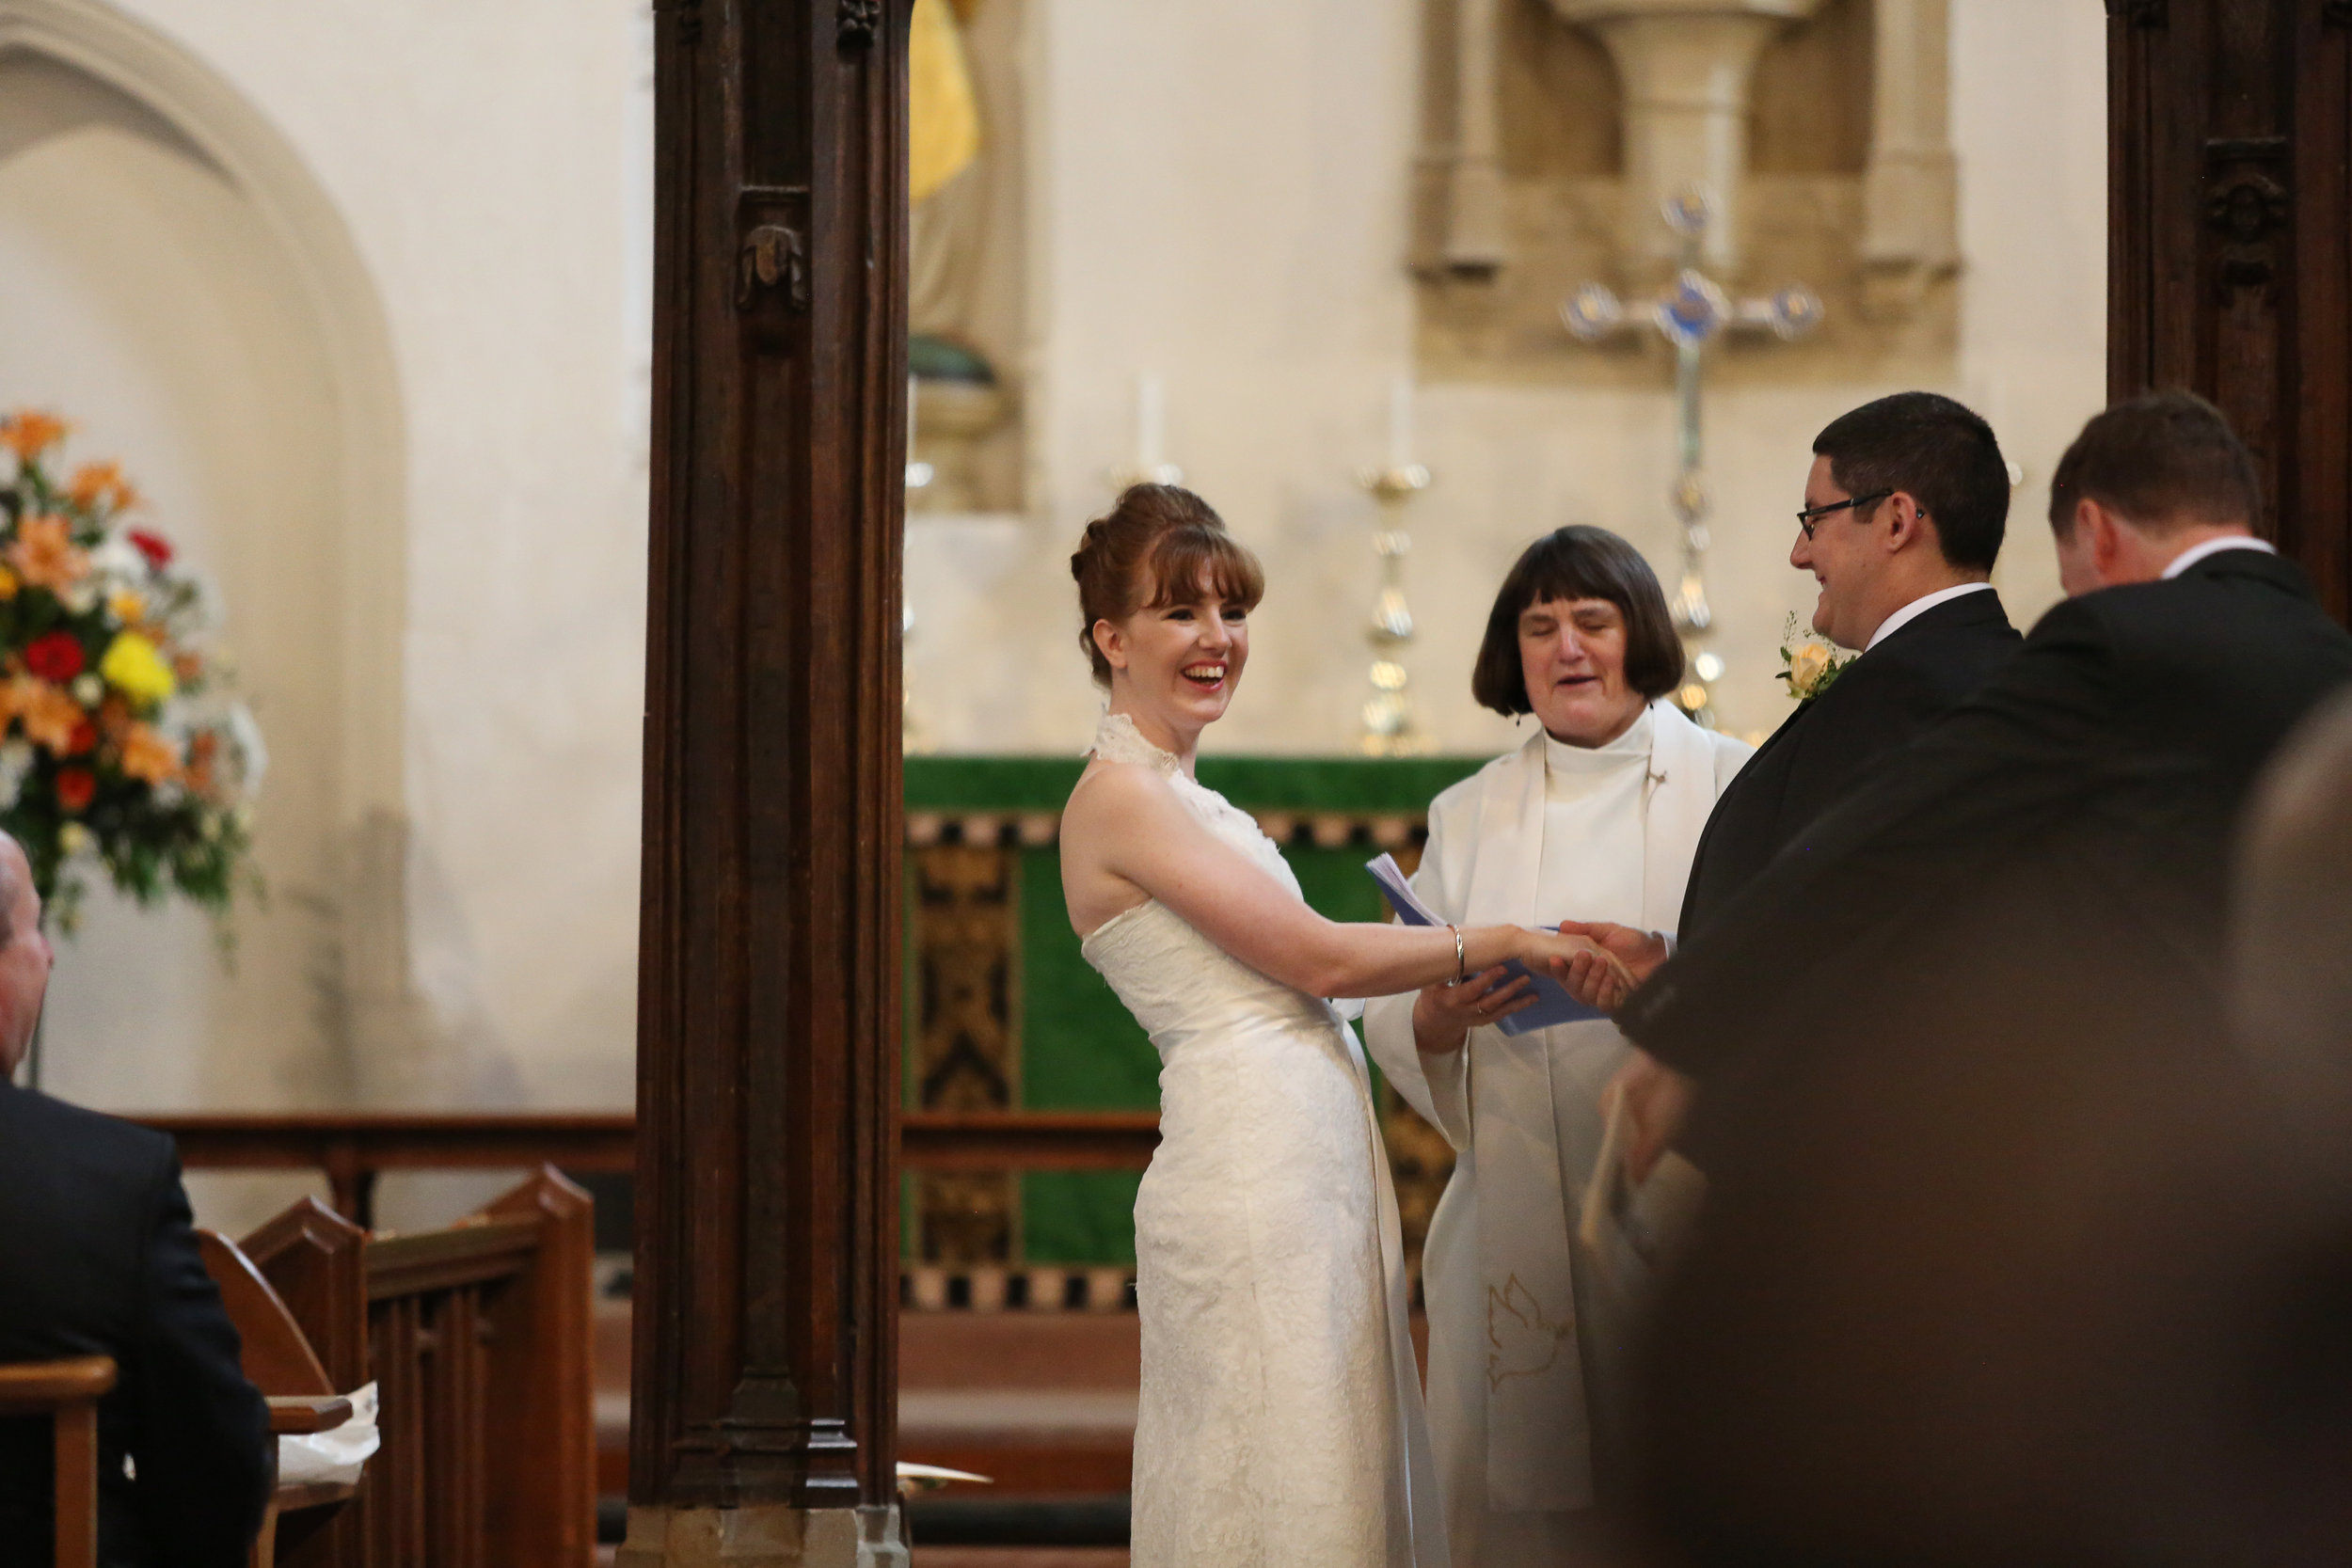 JELLYFISH WEDDING PHOTOGRAPHY THE PRIORY ST PETER CHURCH DUNSTABLE (19).jpg